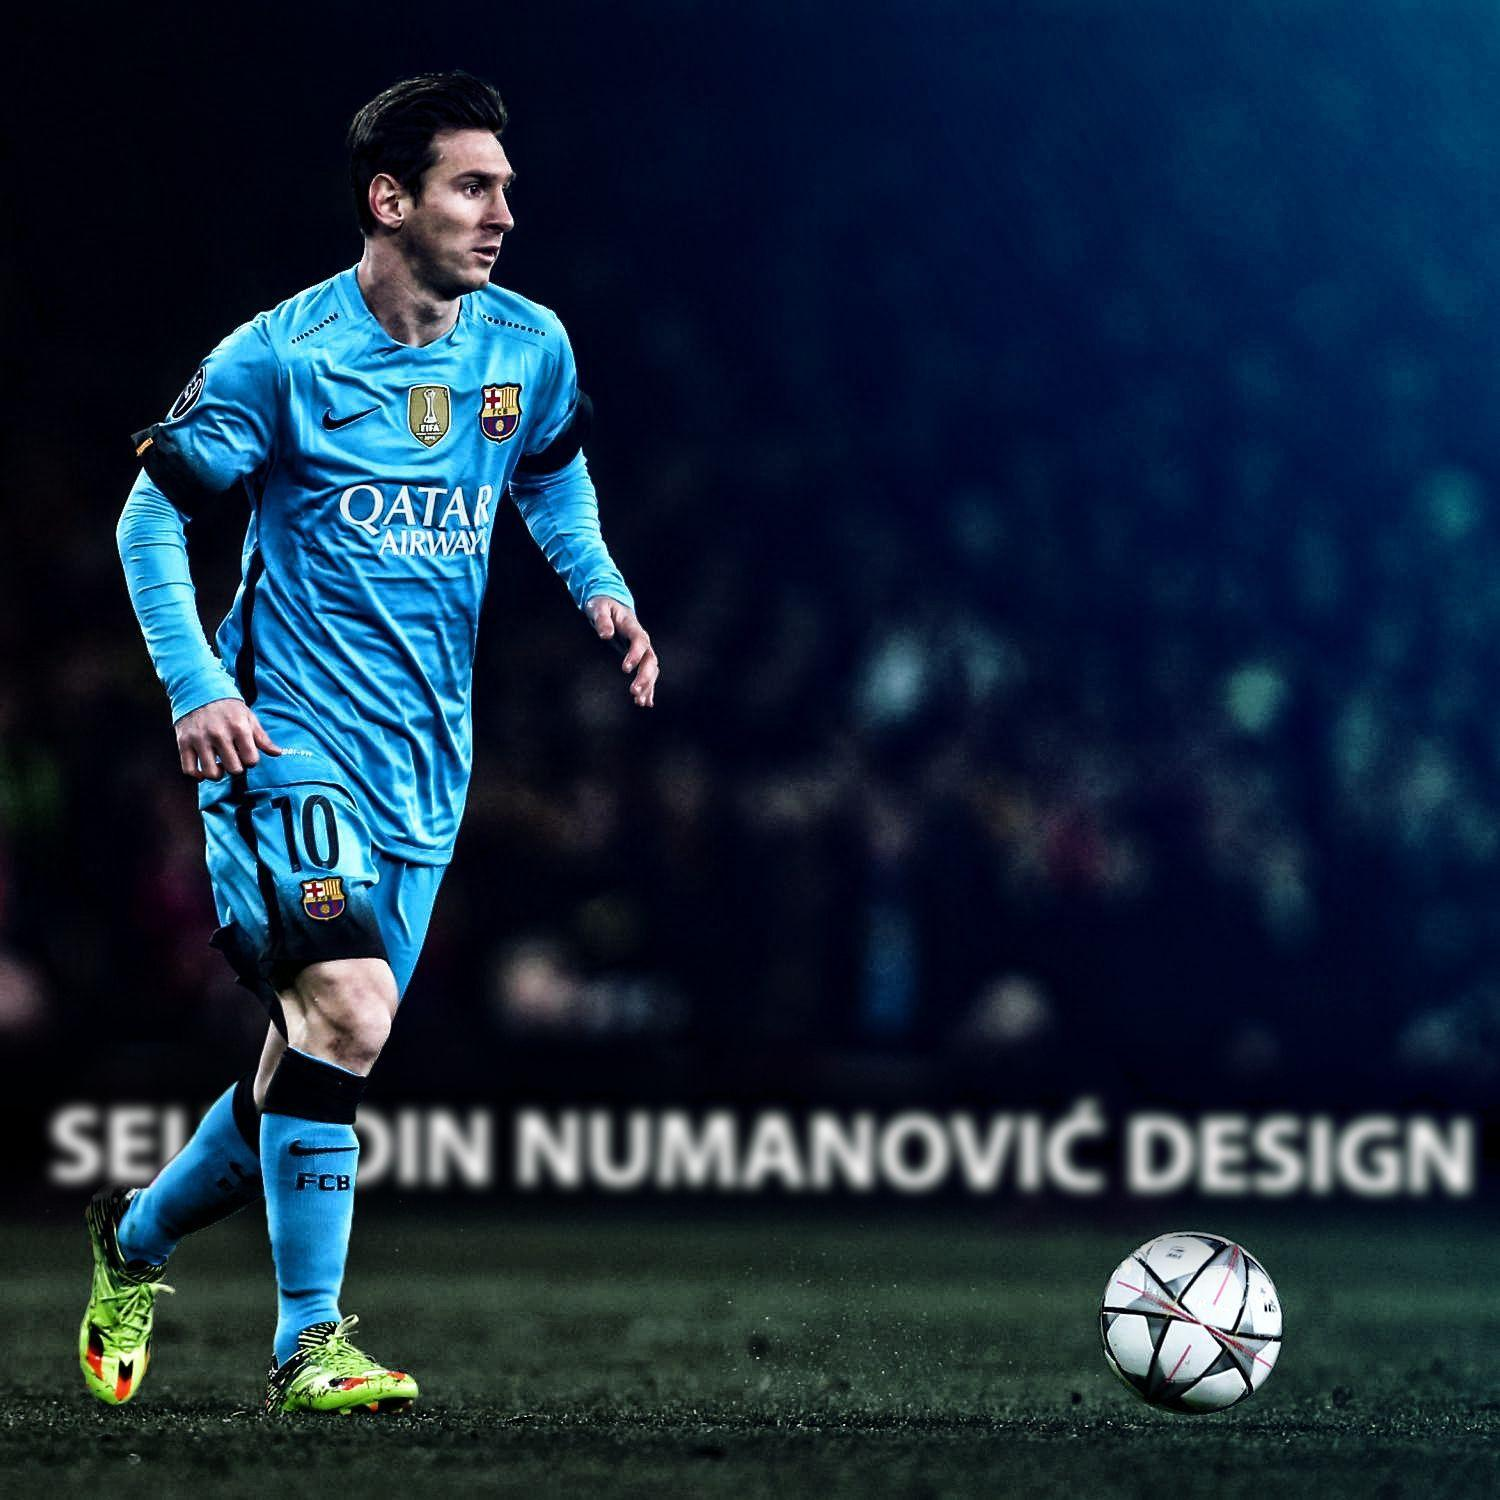 Free Download Lionel Messi Wallpapers 2016 1500x1500 For